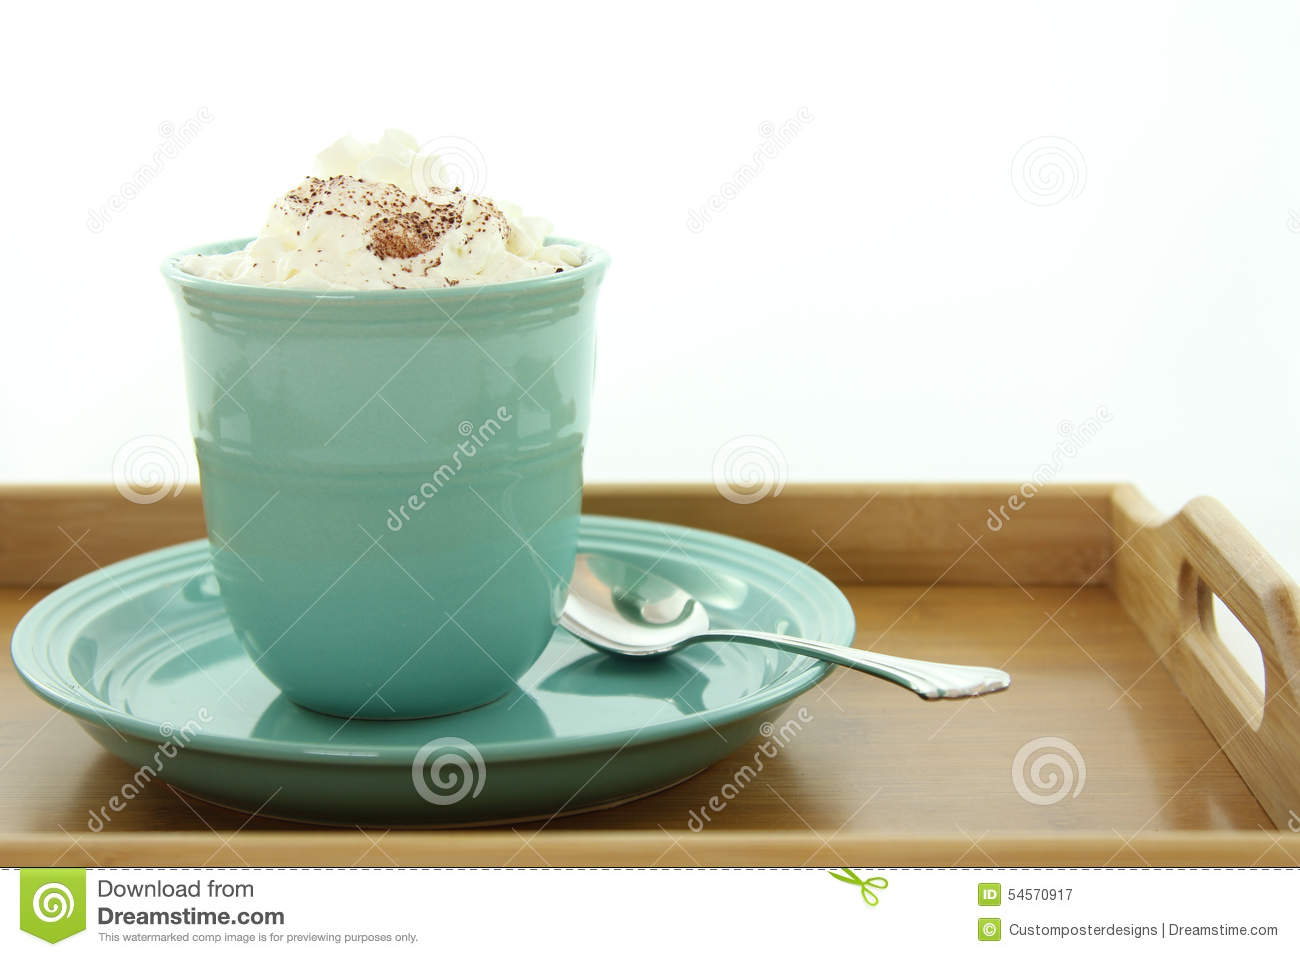 Download A Hot Drink In A Mug With Whipped Cream. Stock Image - Image of drinking, spoon: 54570917